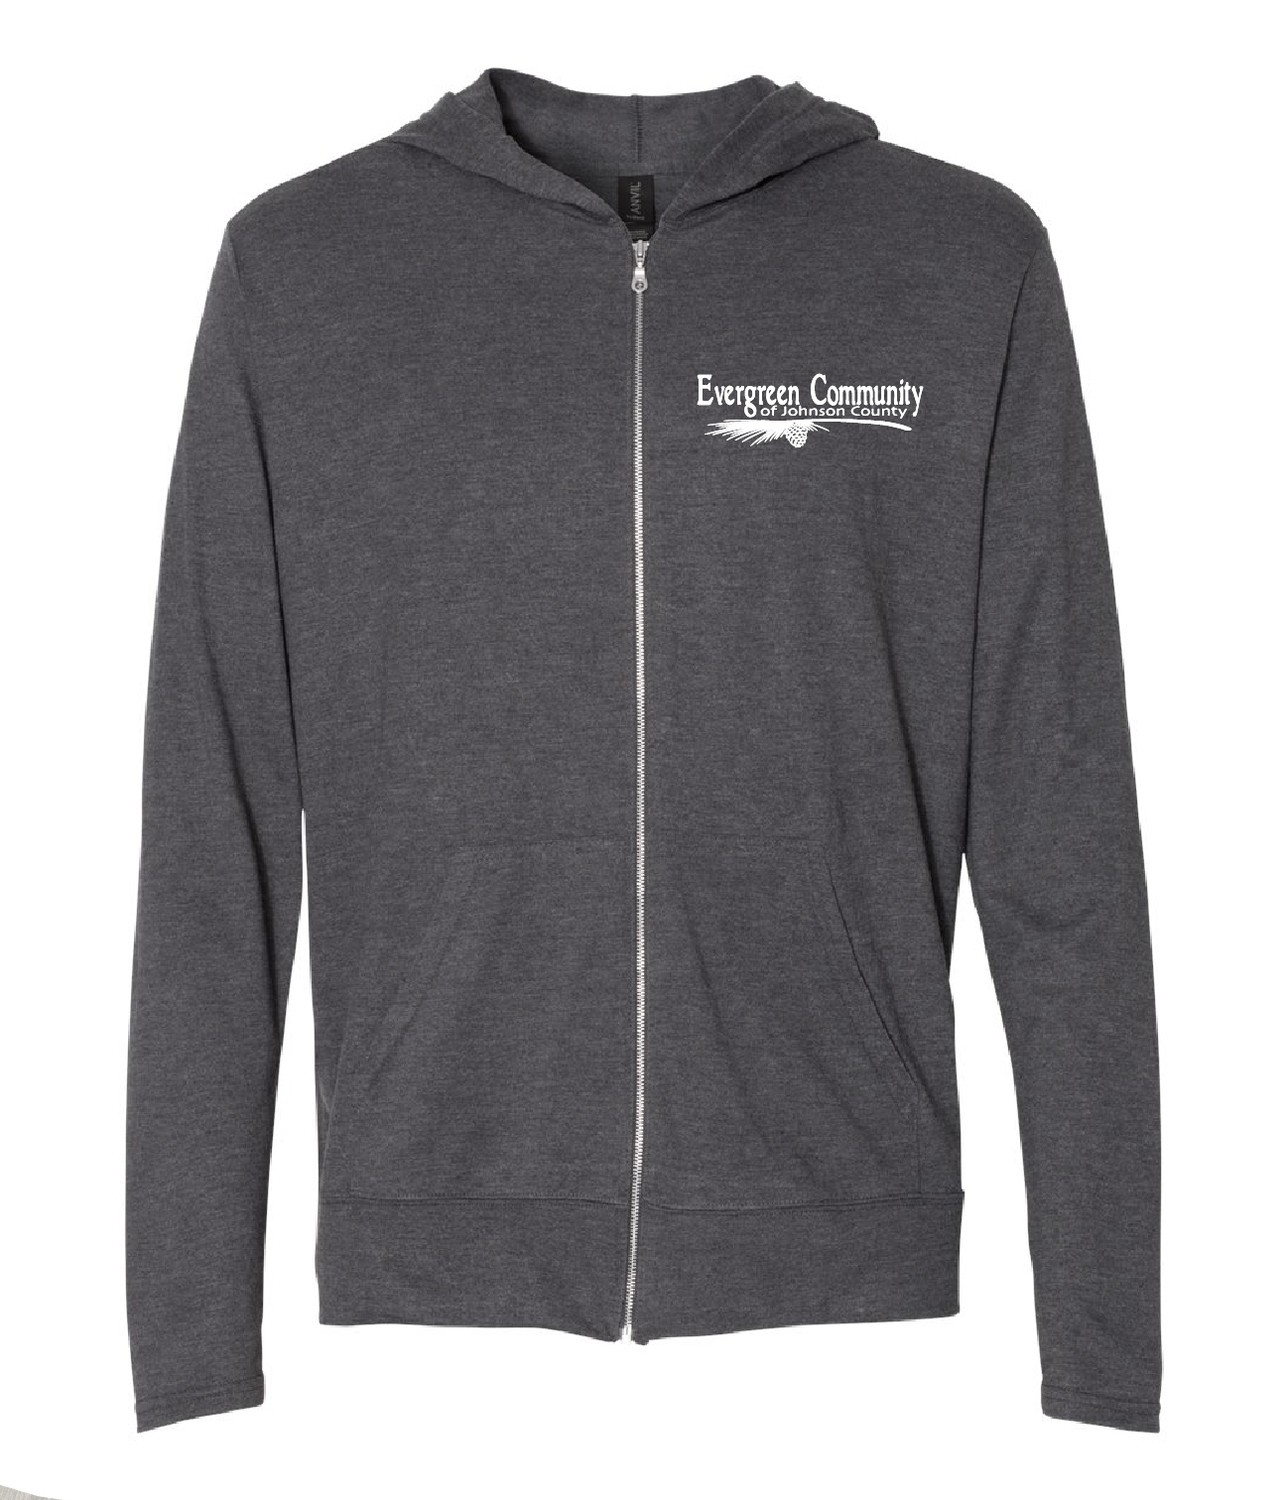 Lighweight Triblend Hooded Full-Zip